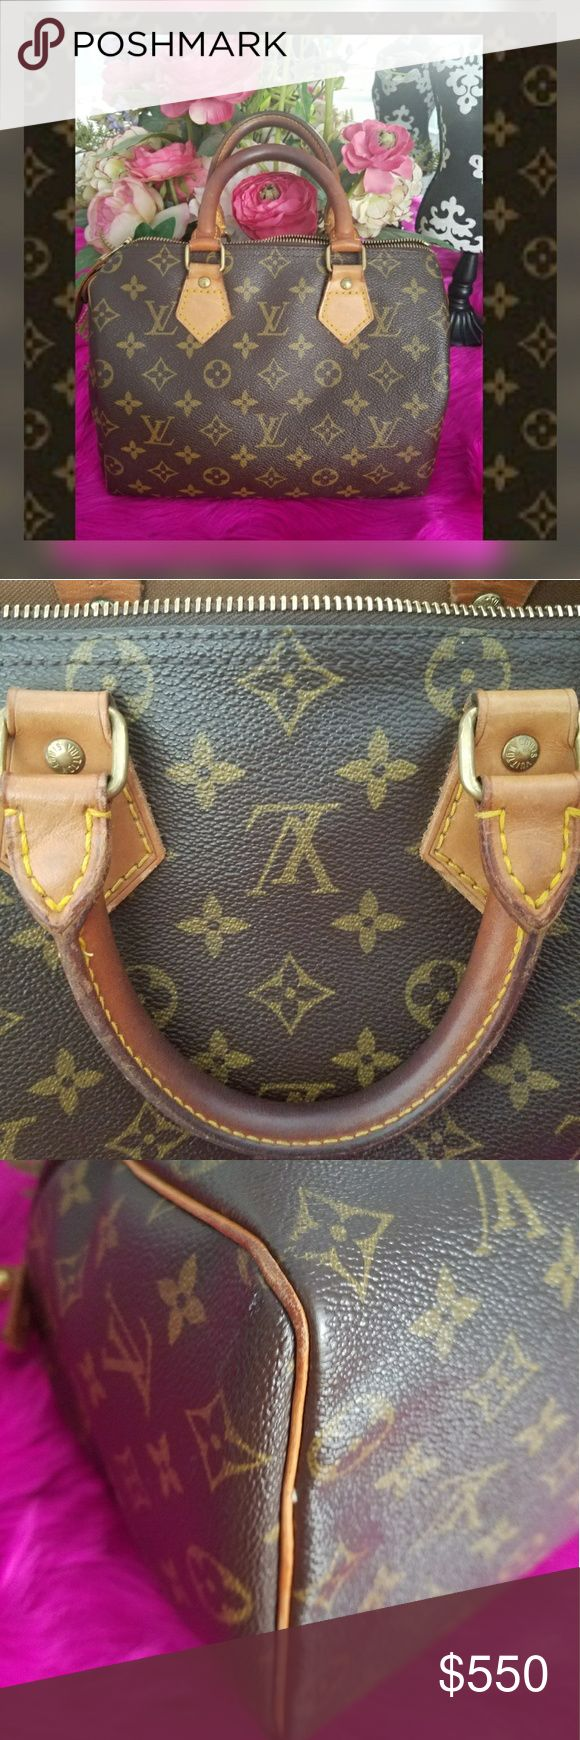 Authentic LOUIS VUITTON Speedy 25 Bag Authentic LV plus in great preloved condition with minor flaws    The color is beautiful and in great condition.   I have another LV in my closet   ❌ Handles have normal wear with a beautiful darkening tone  ❌ Interior, underneath zipper area where zipper closes has a very small material rip. It's very hard to see and doesn't appear to be affect the threading.   Date code; was made in 1988 of the 4th month in USA   NO LOW BALL OFFERS. Louis Vuitton Bags…